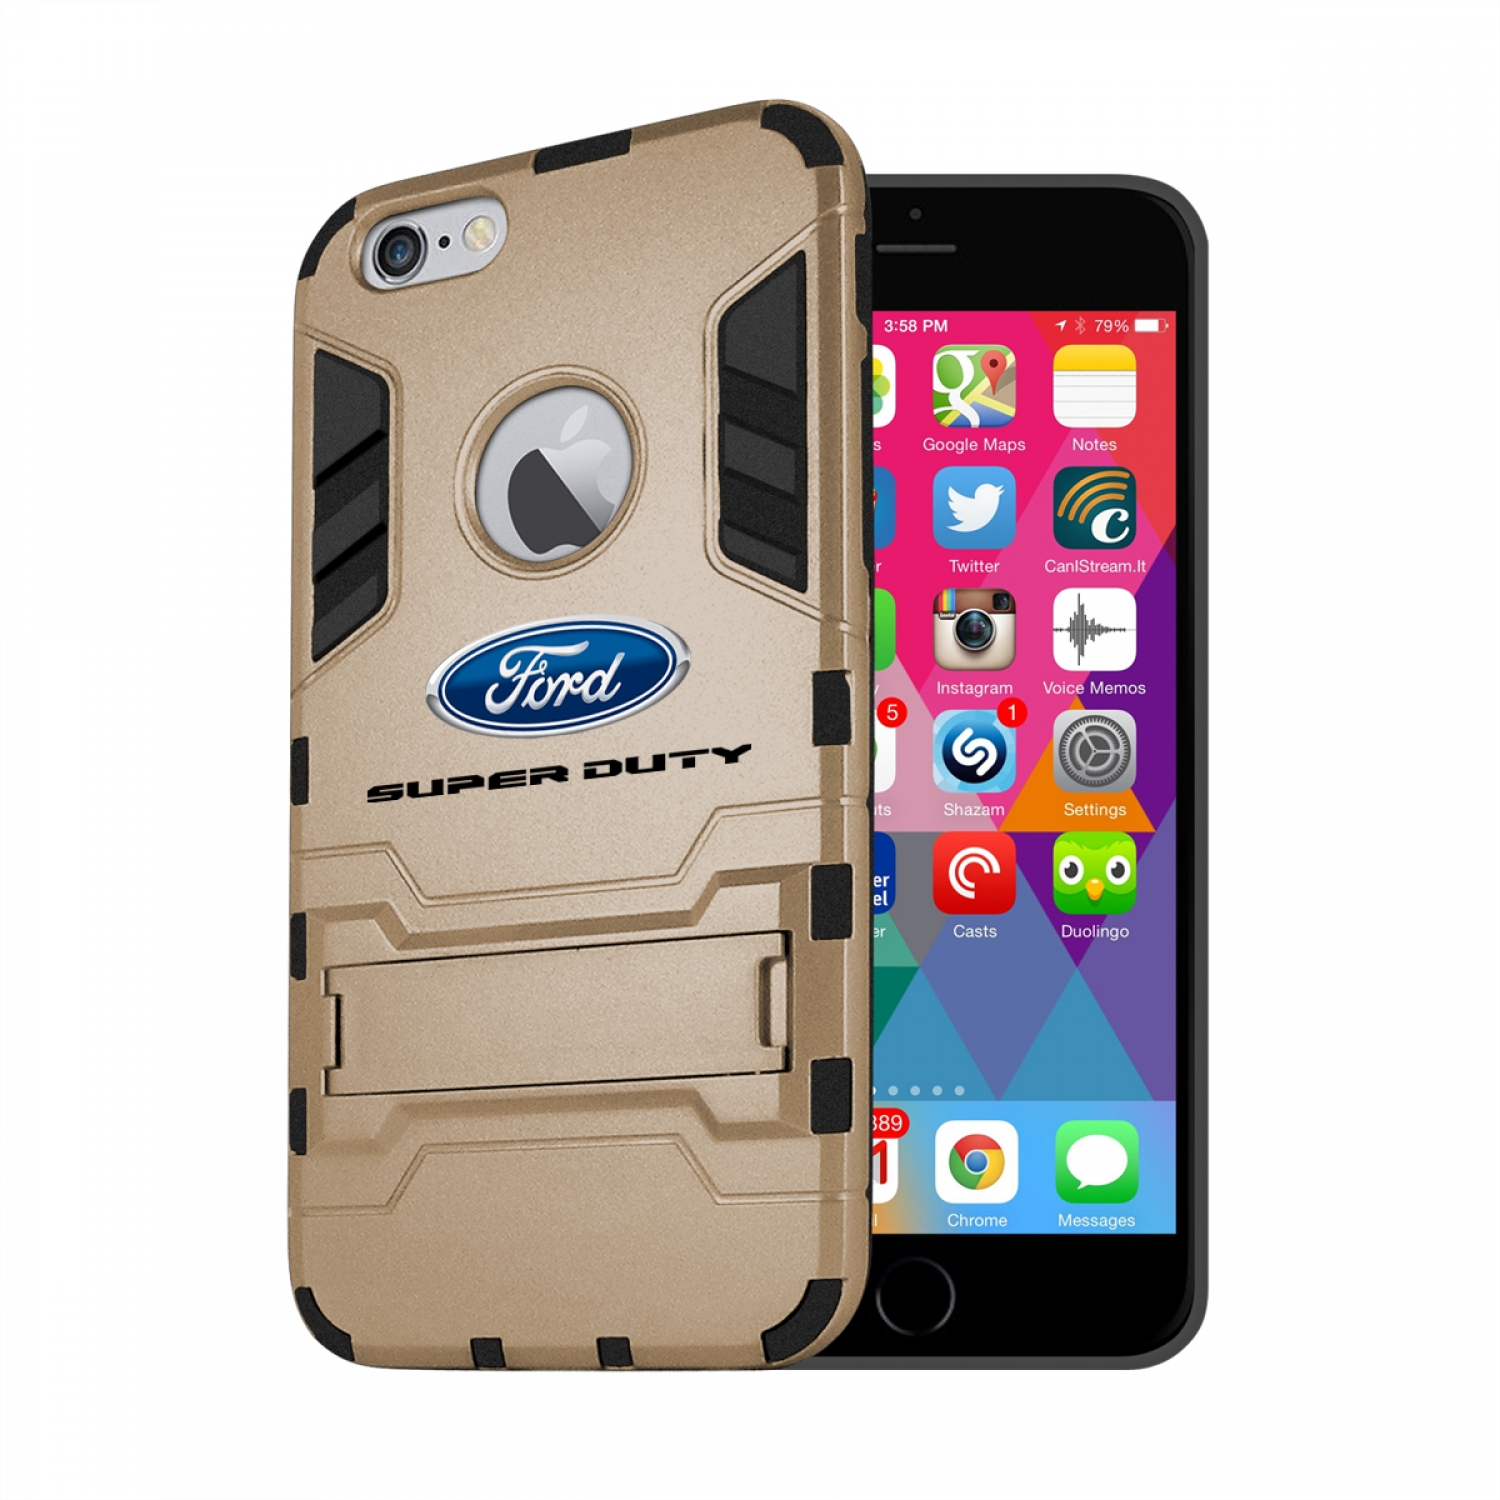 Ford Super Duty iPhone 6 6s Shockproof TPU ABS Hybrid Golden Phone Case